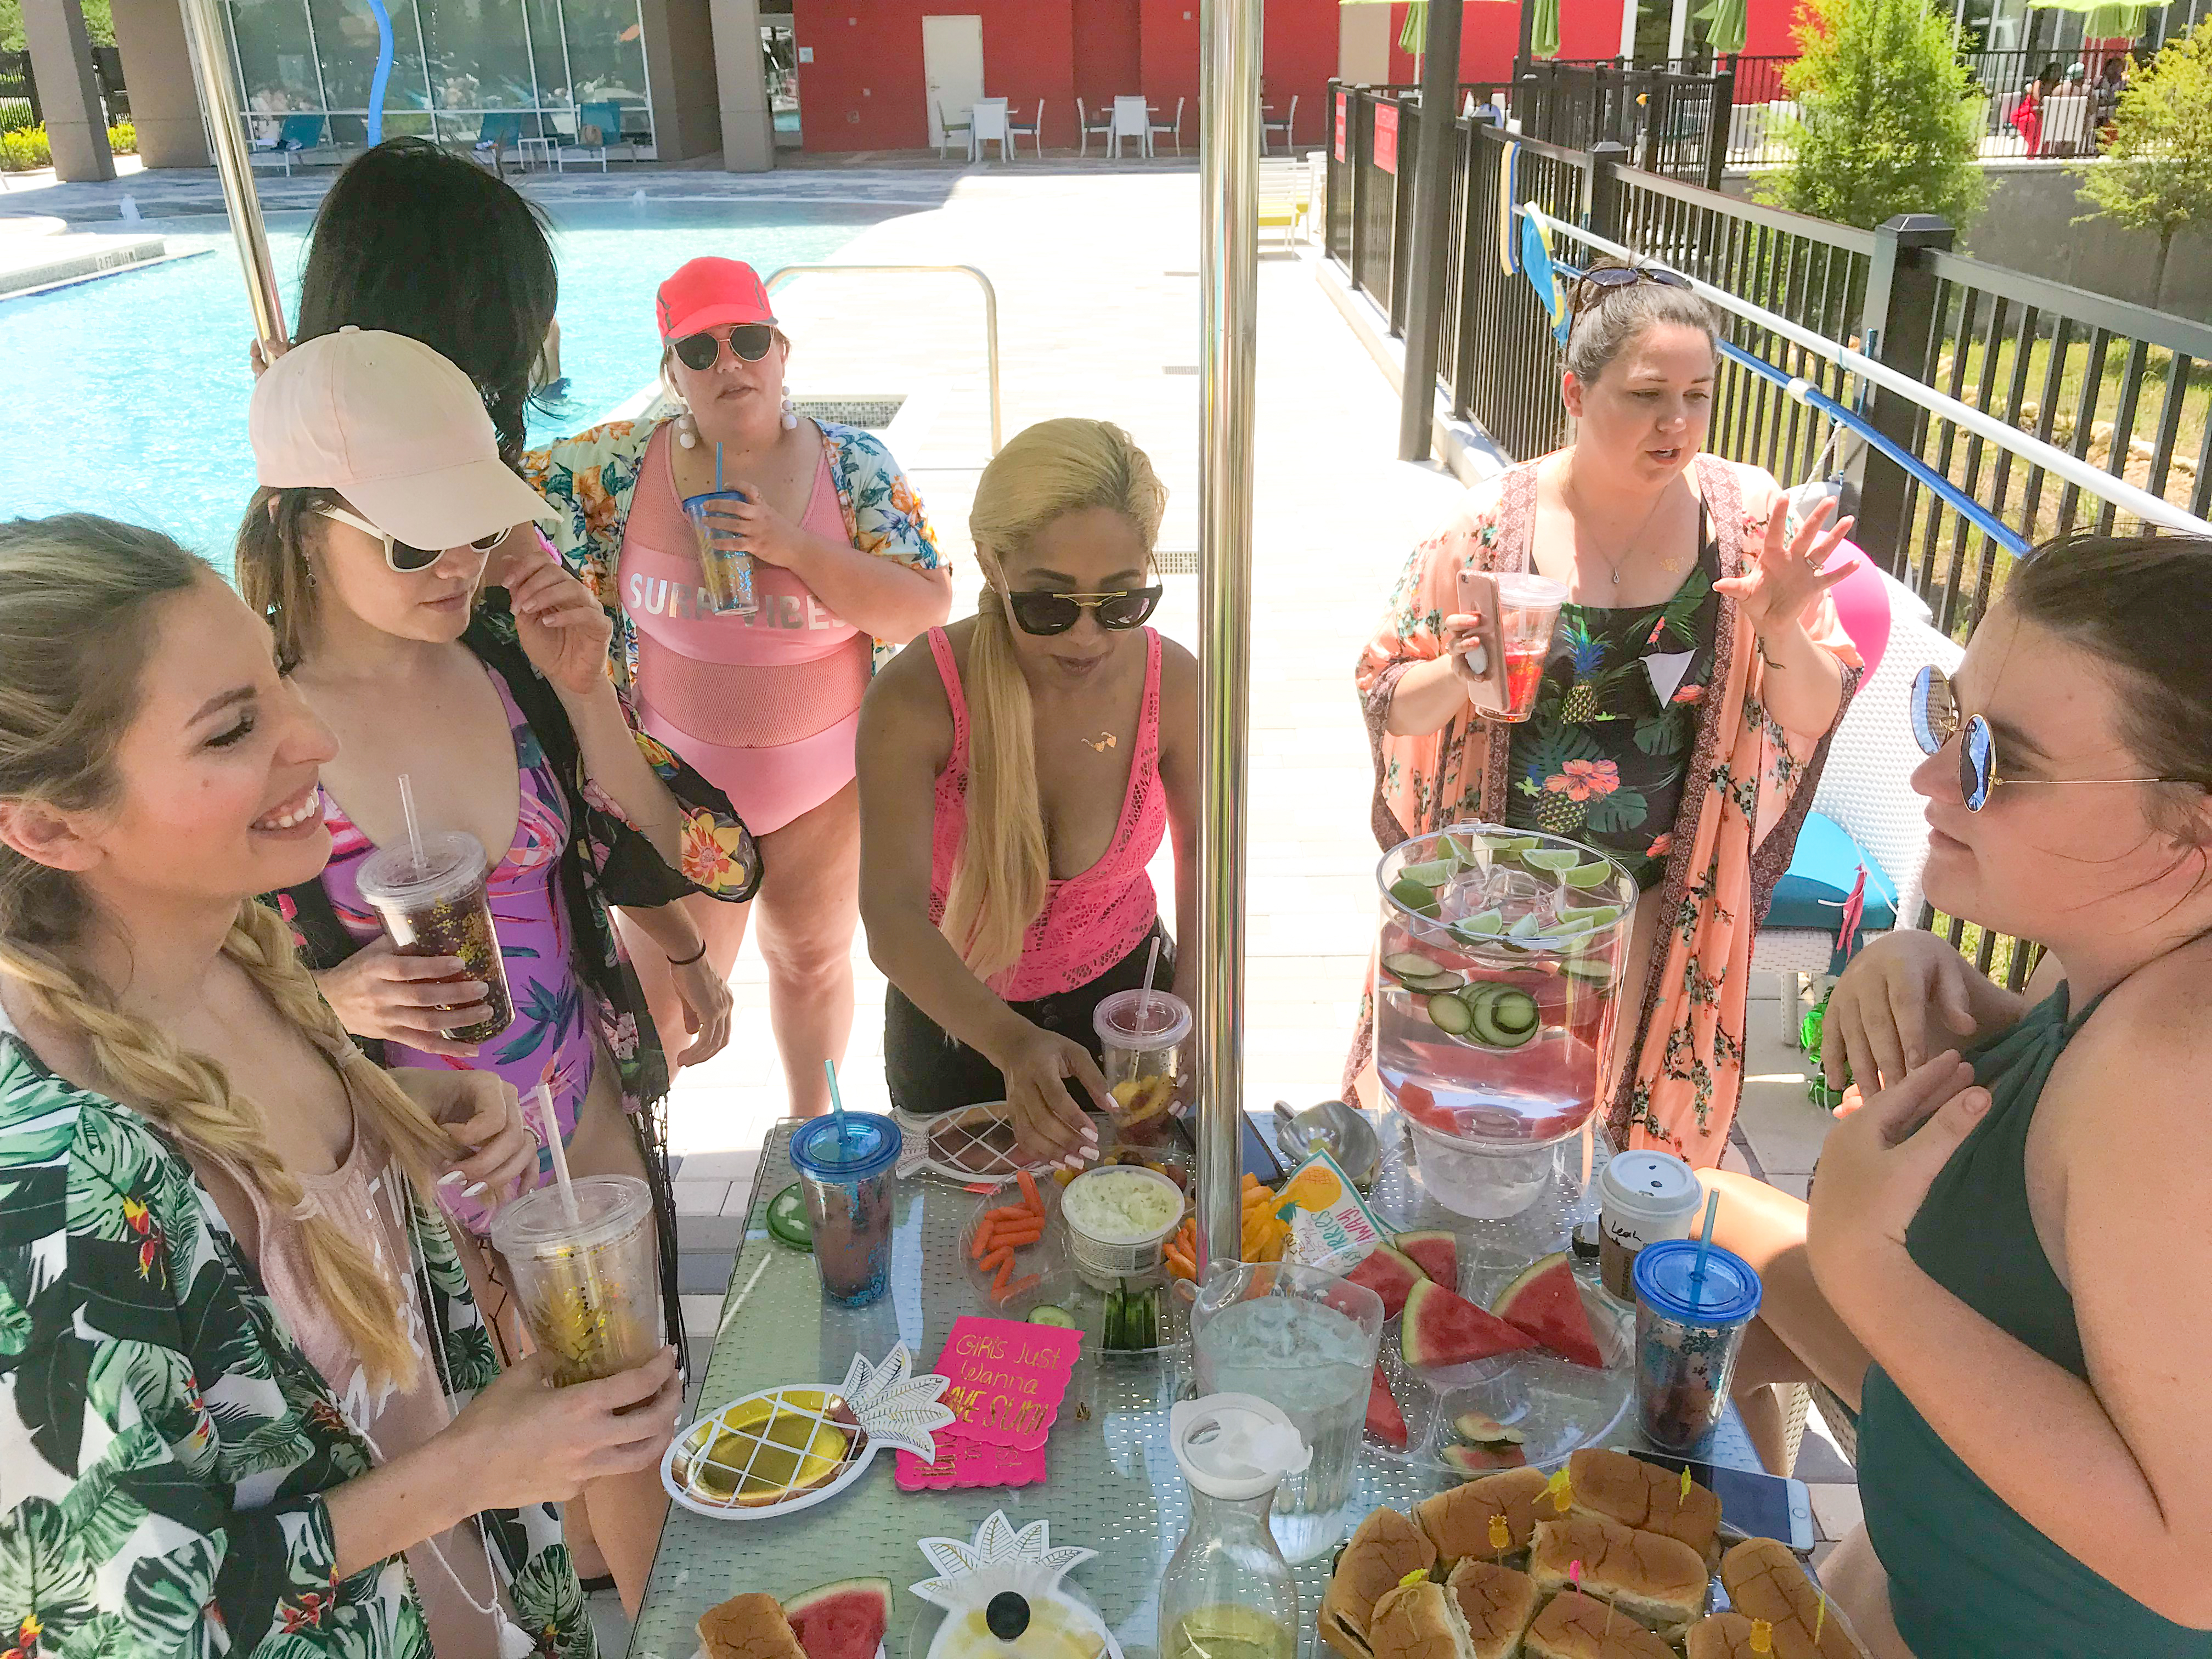 BUDGET BACHELORETTE SUMMER BASH